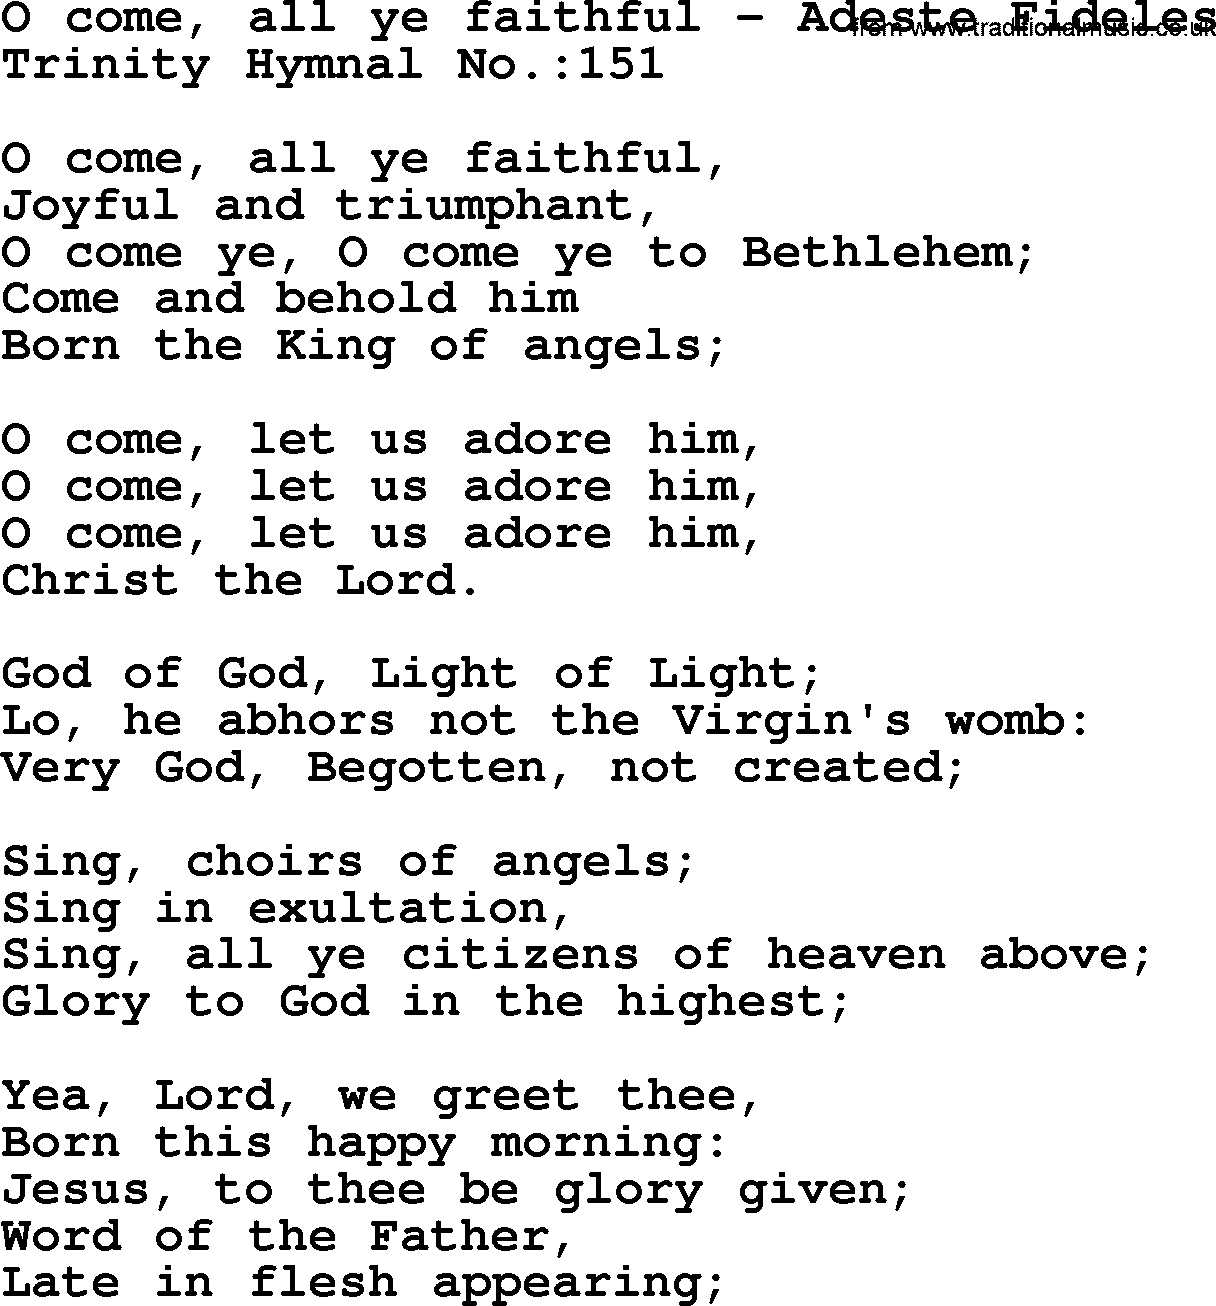 O Come All Ye Faithful with lyrics. - YouTube